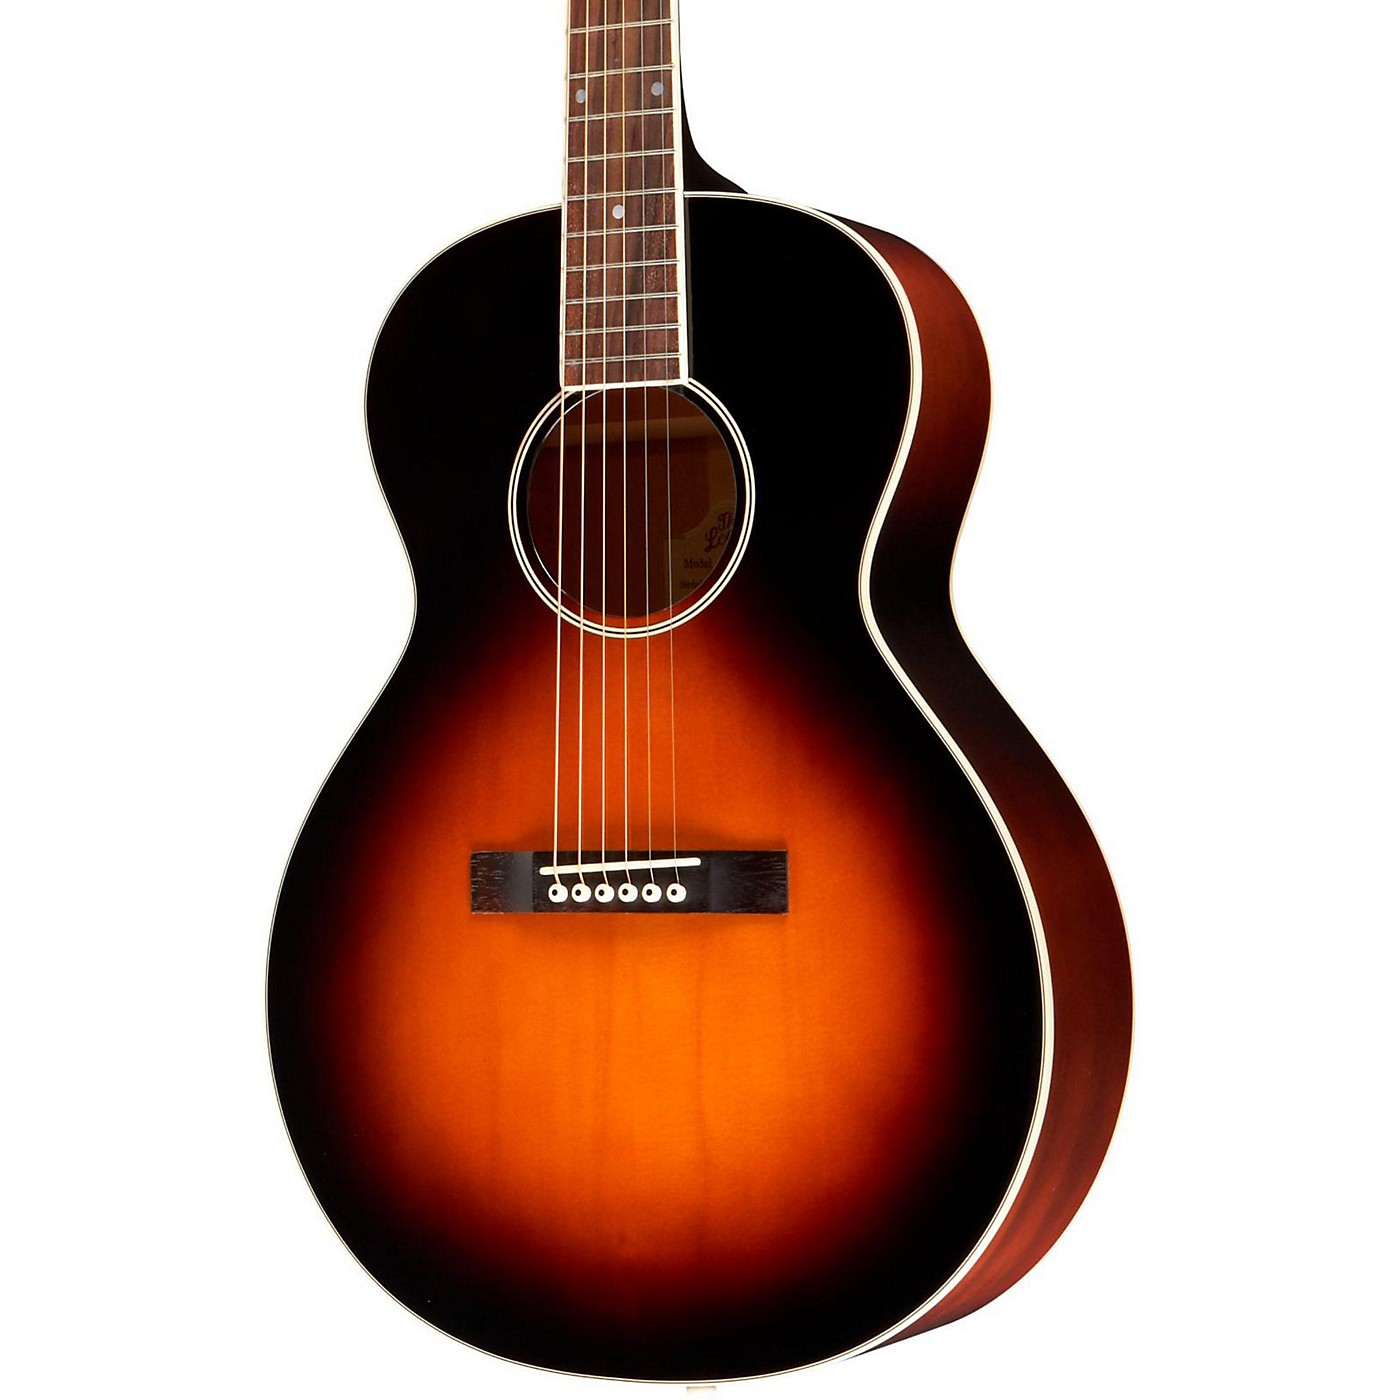 The Loar LH-250 Small Body Acoustic Guitar thumbnail